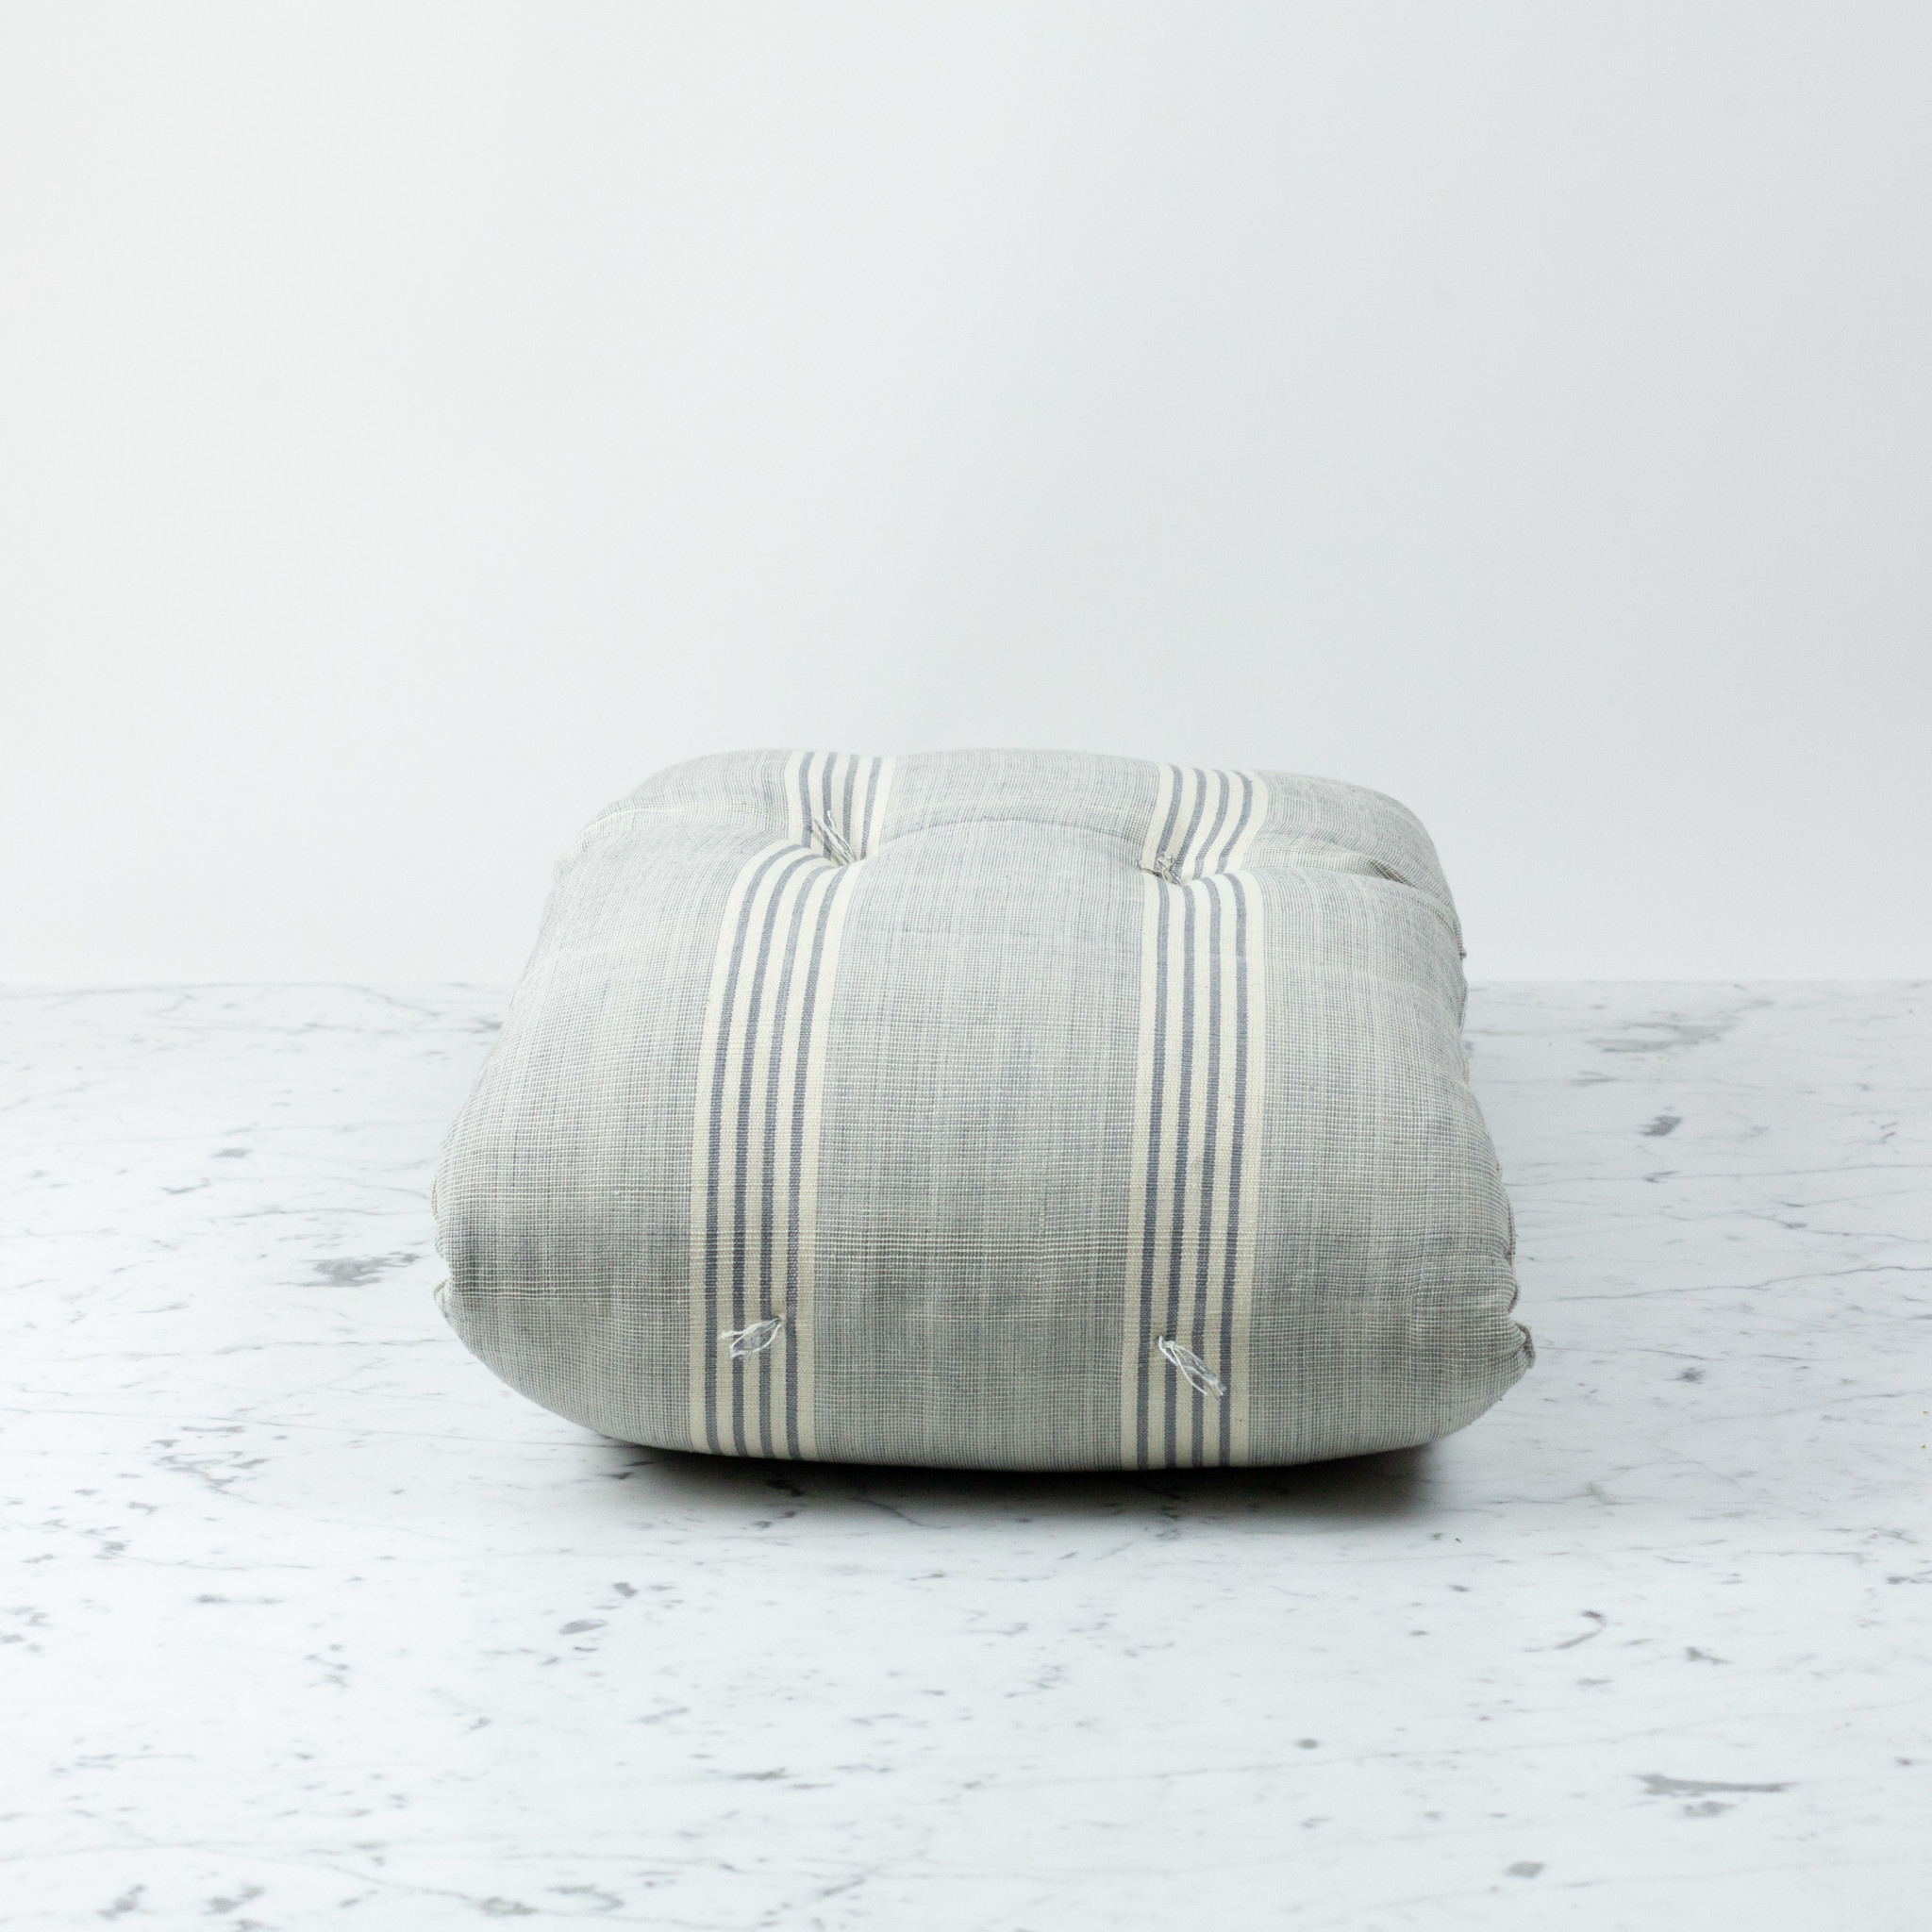 TENSIRA Custom Handwoven Cotton Cushion - Kapok Filling - Grey + White Thick Stripe - 55 x 14 inch